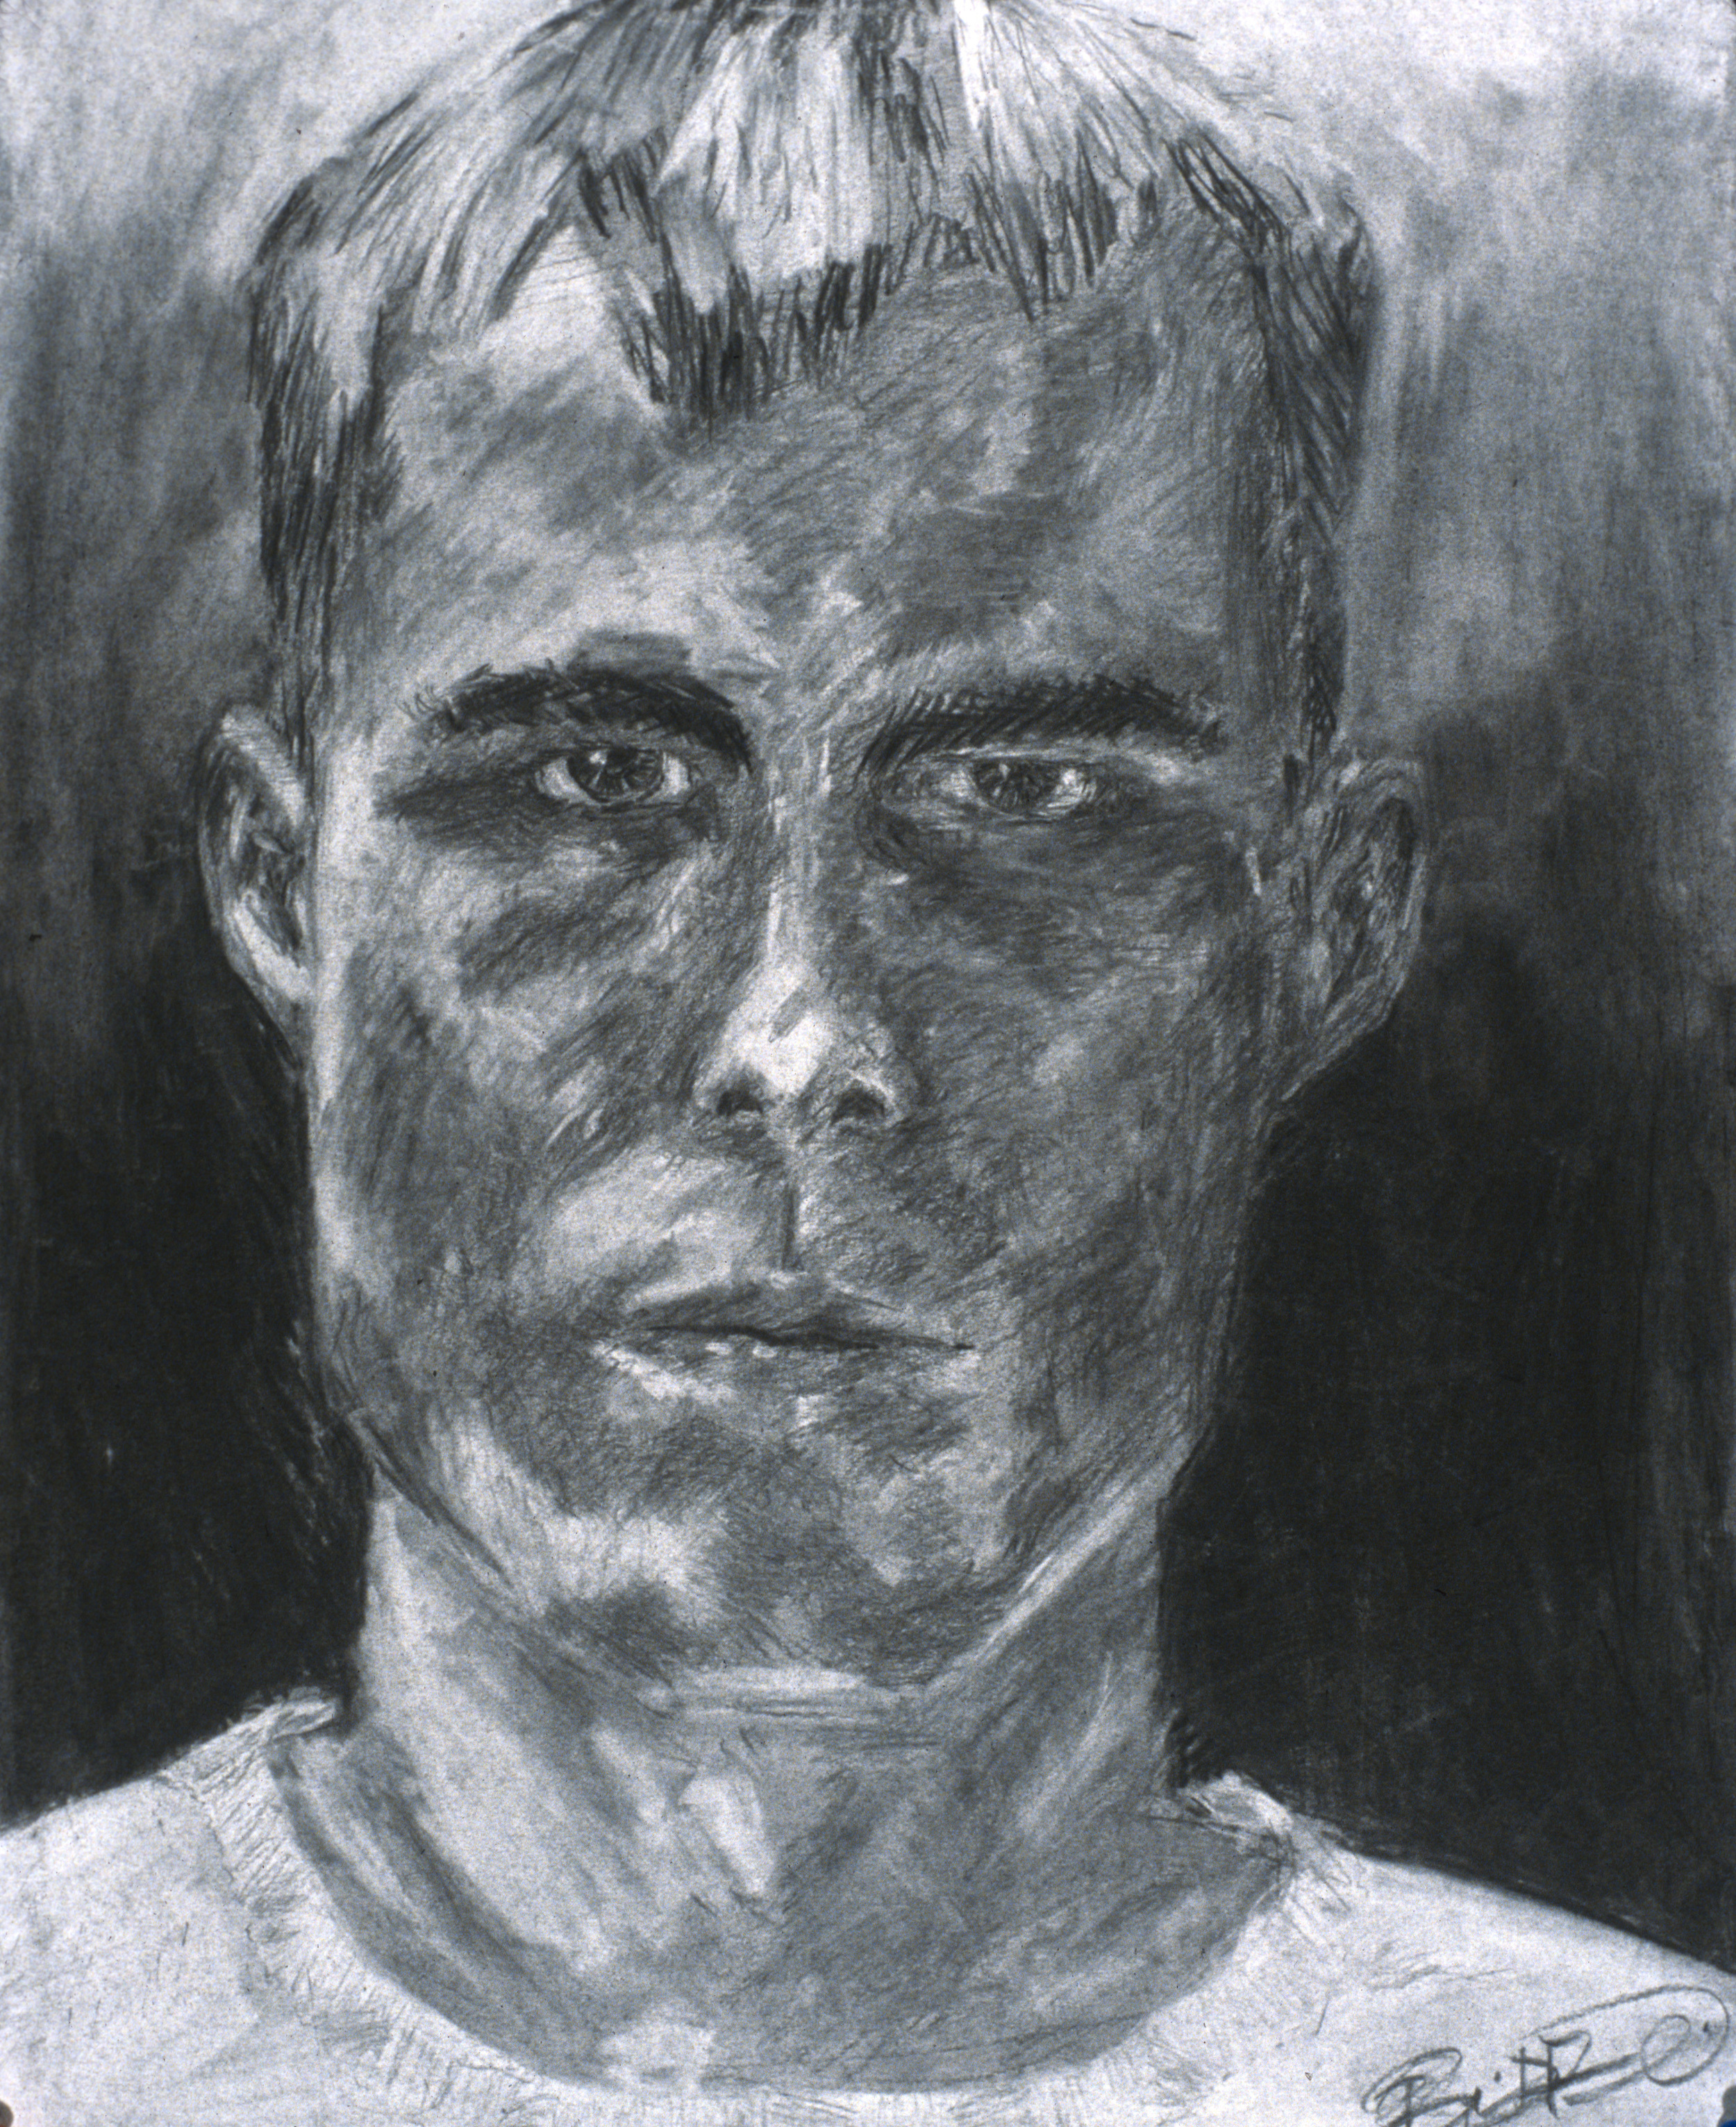 Self-portrait; charcoal